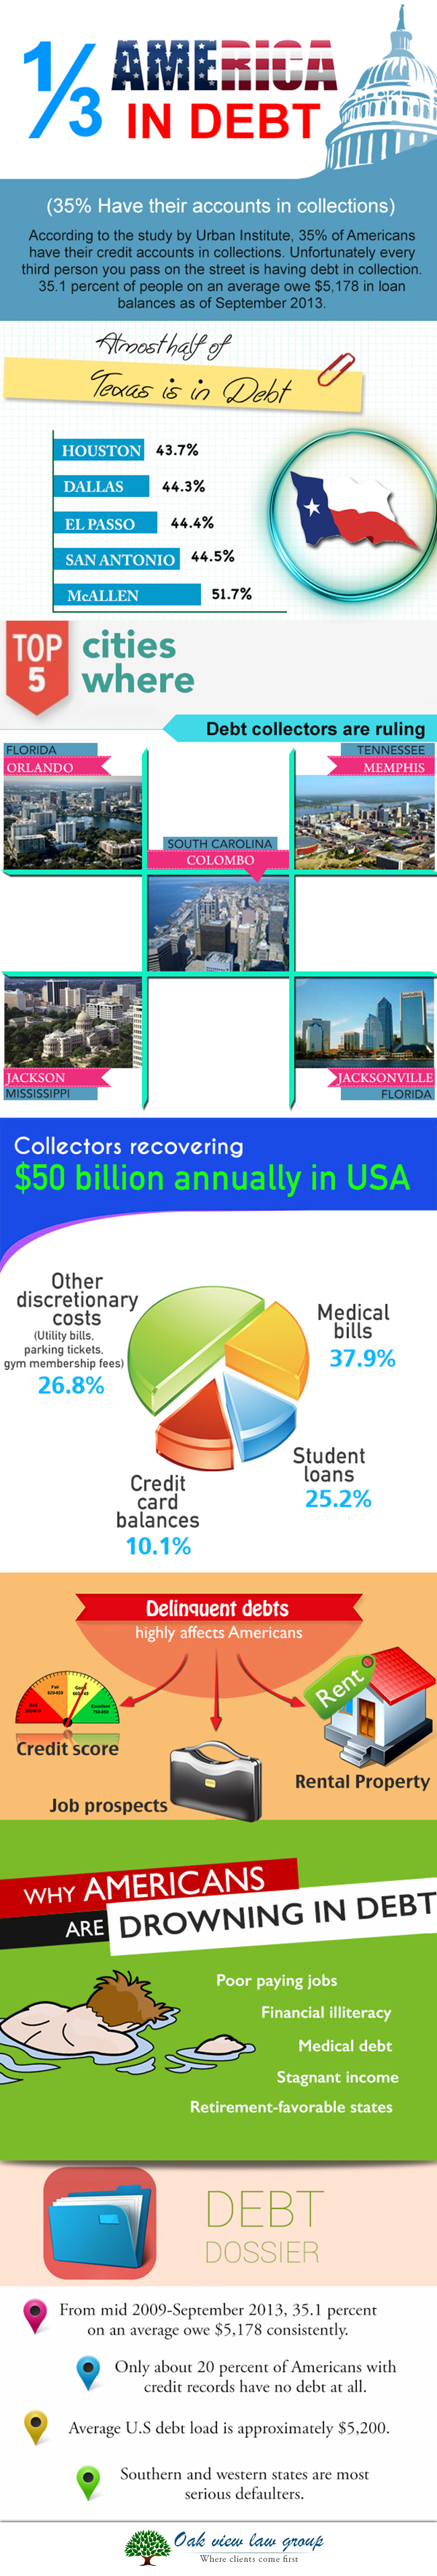 1/3 of Americans are in debt: 35 Percent of them have accounts in collections